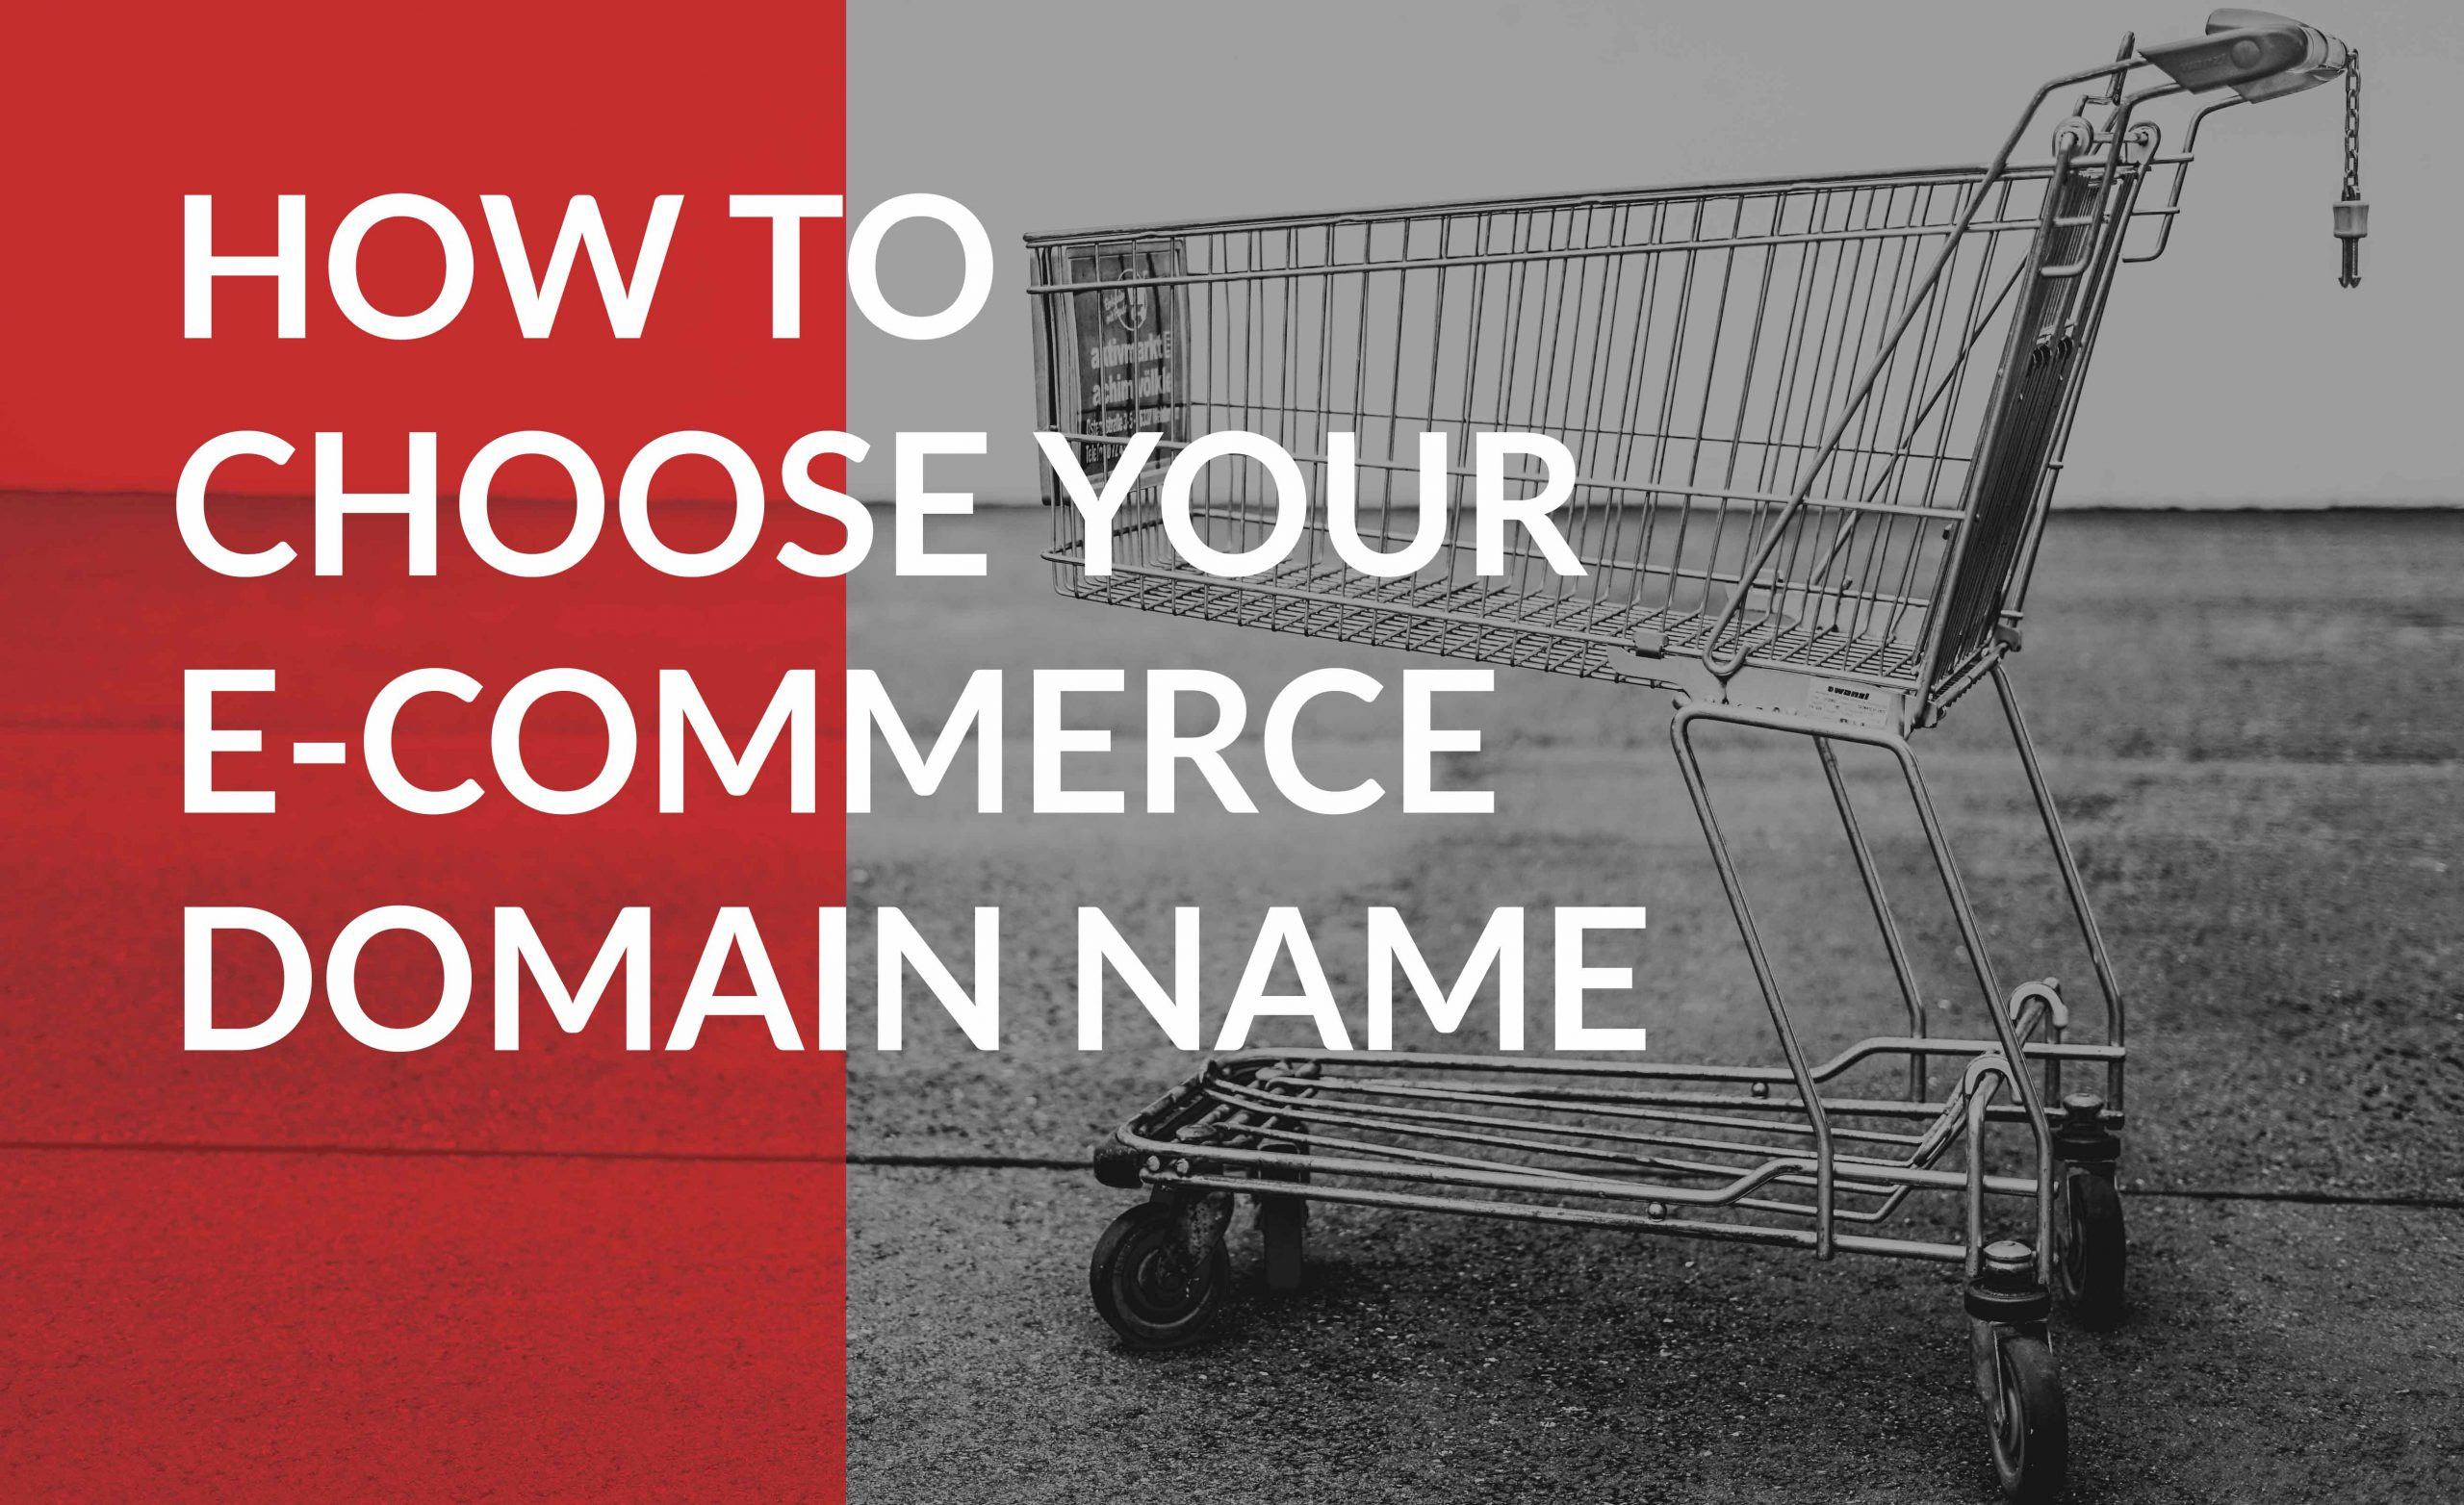 tips on choosing the perfect e-commerce domain name